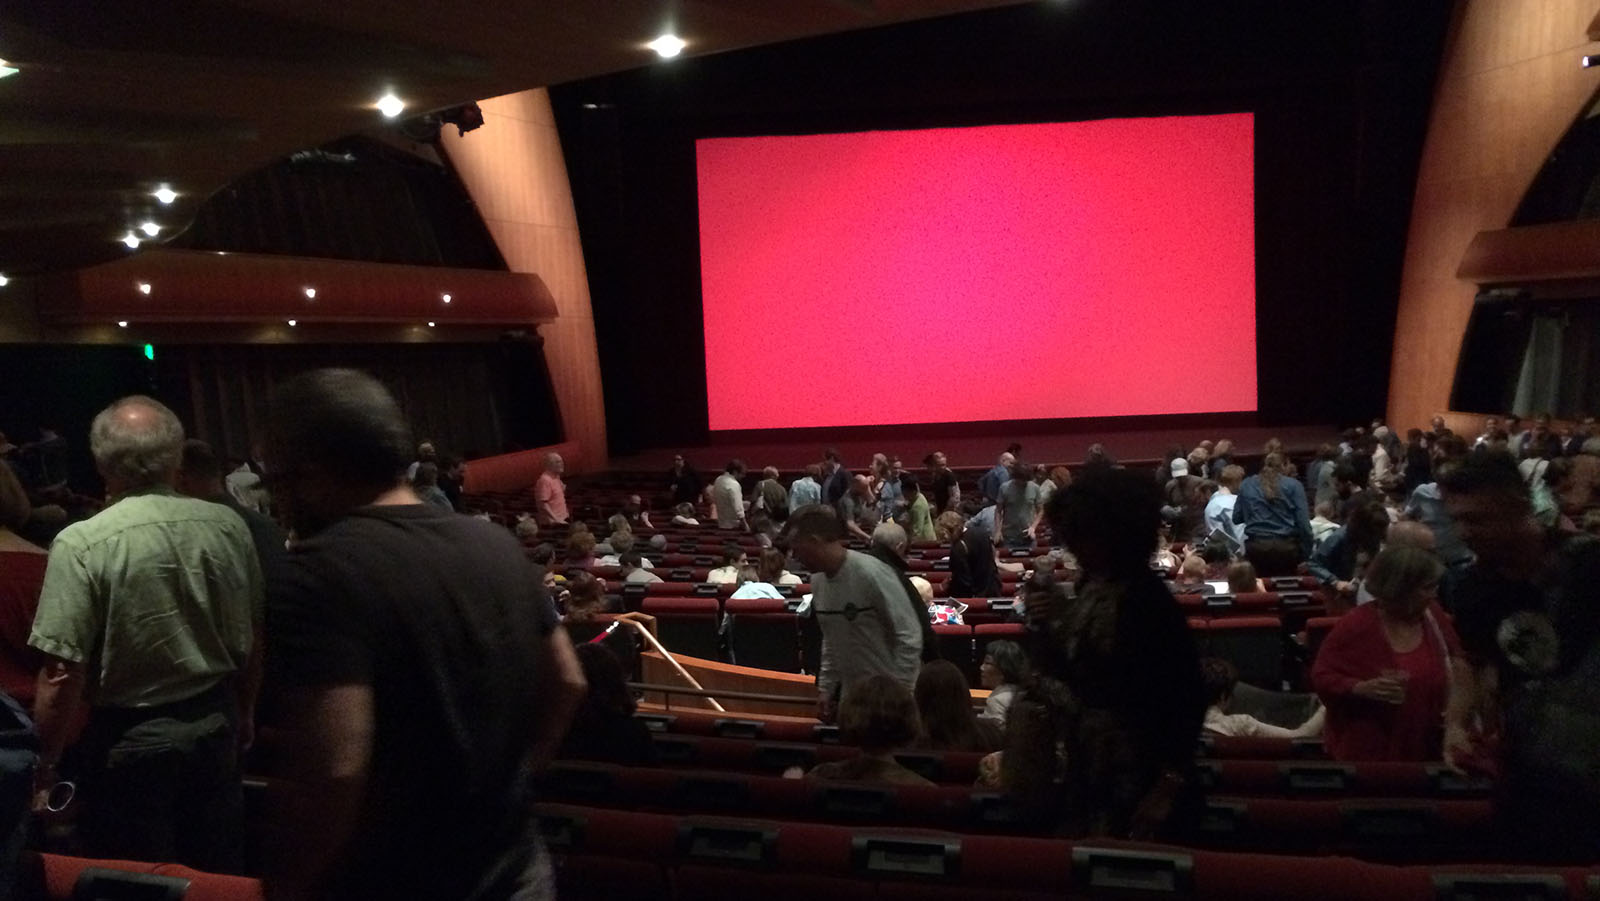 Red screen following the screen of River of Fundament